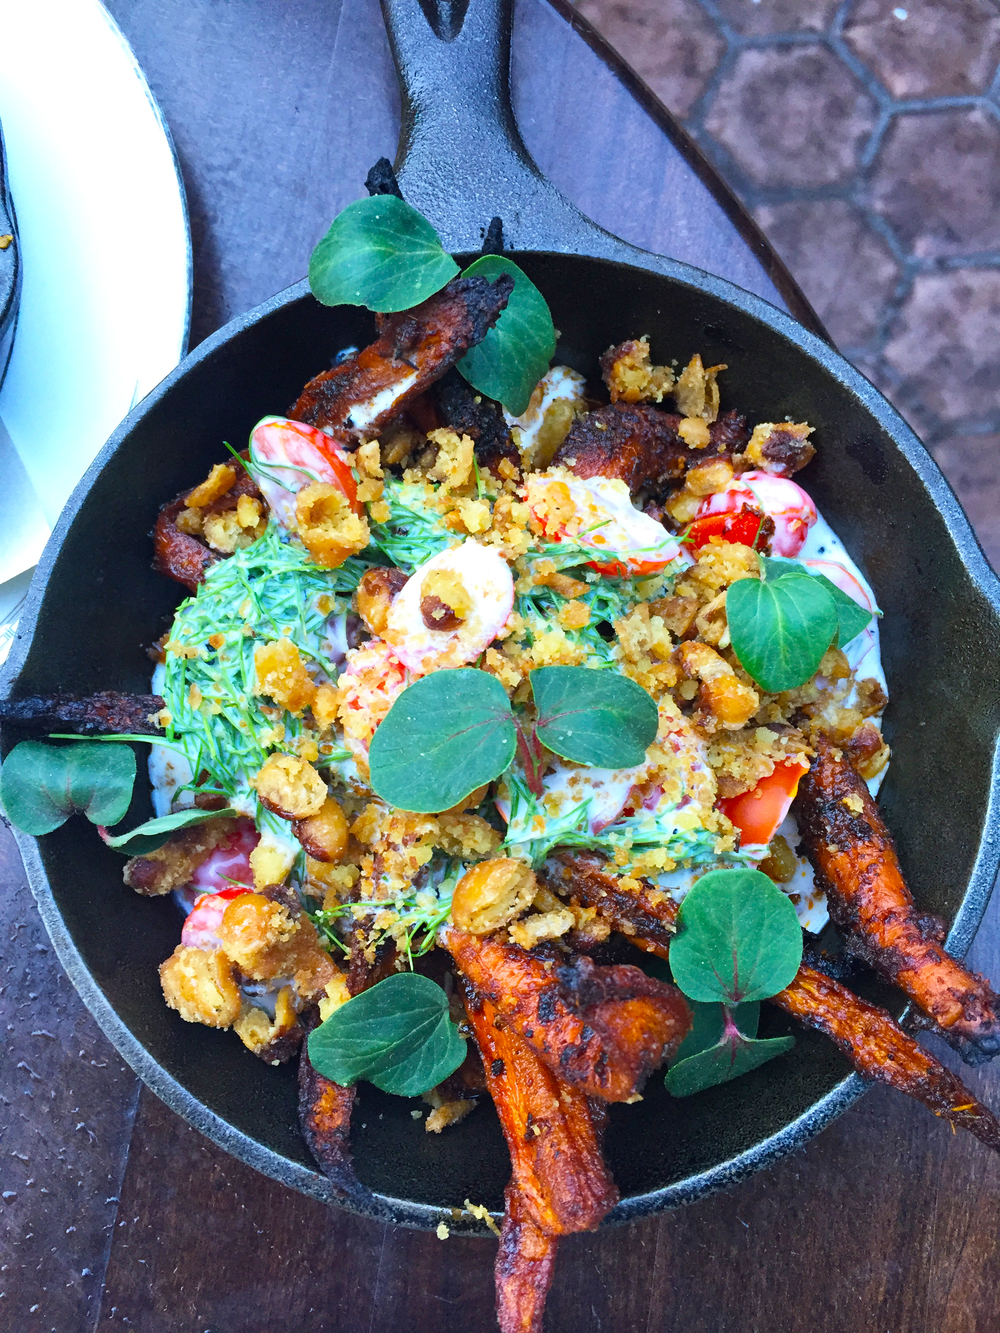 Spicy Roasted Carrots with Goat Kefir-Marinated Tomatoes, Toasted Yellow Eyed Peas, & Emeril's BAM!